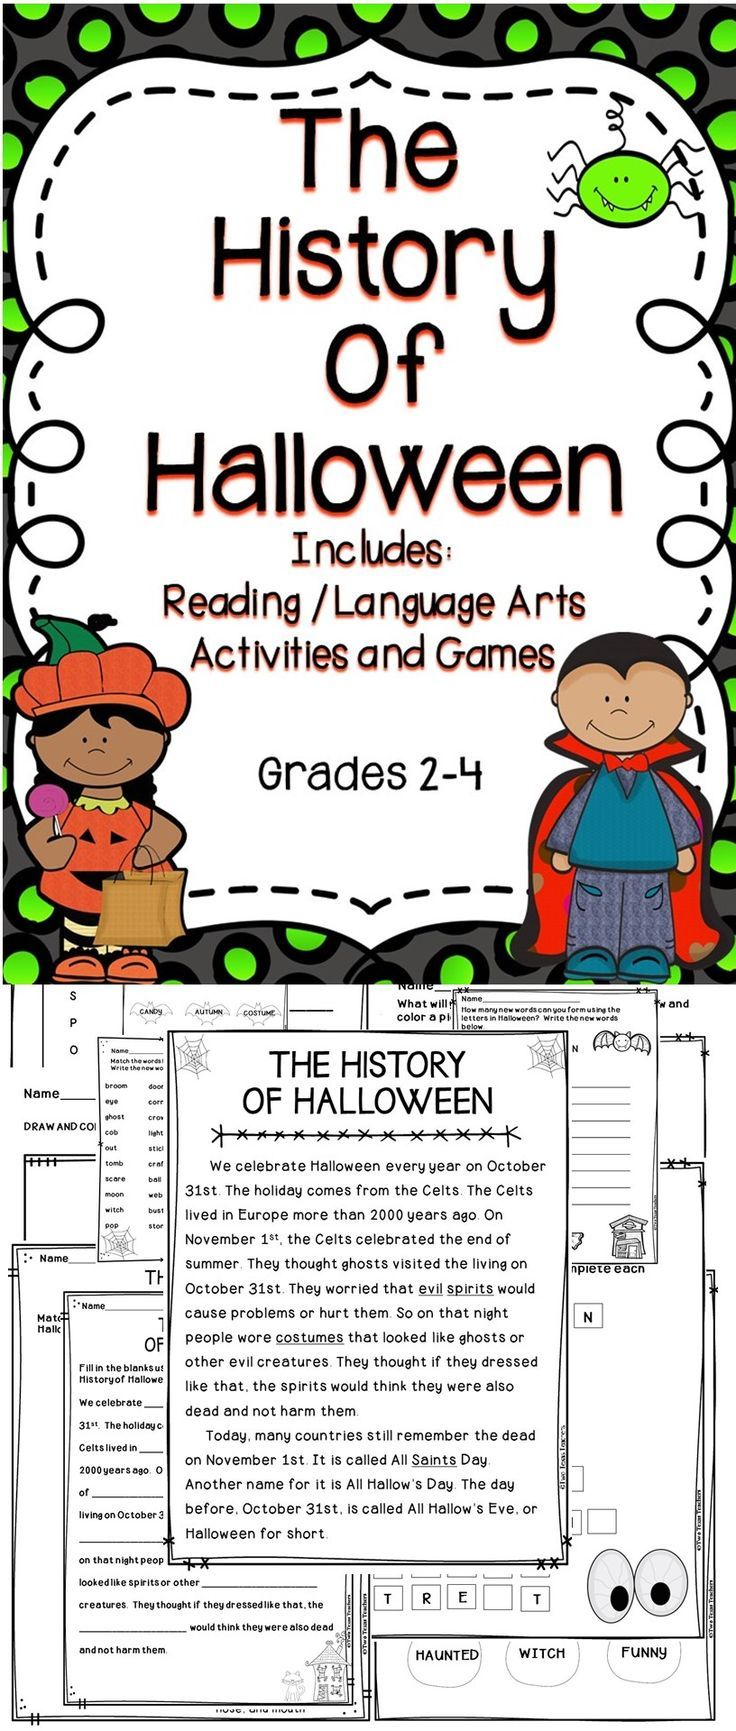 17 Best ideas about History Of Special Education on Pinterest ...